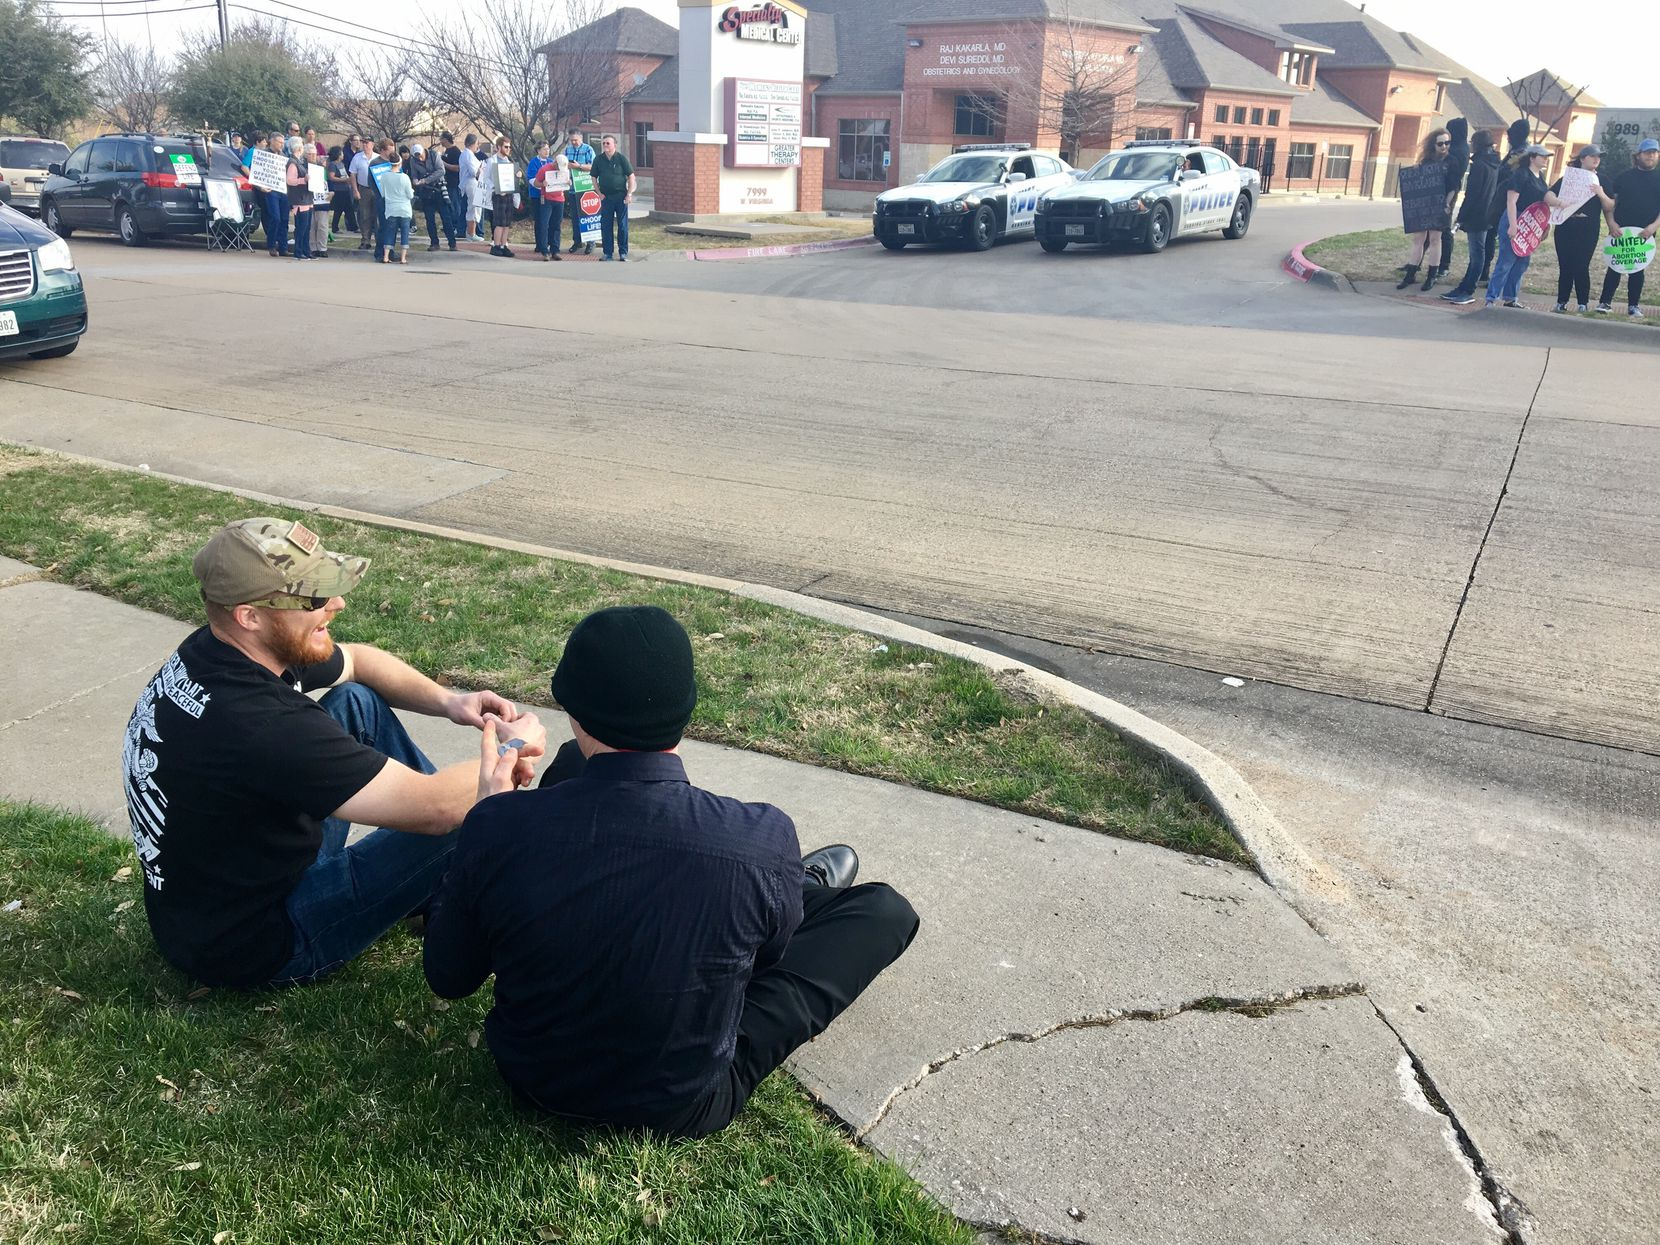 Robert Wetzel (left) and Greg Stevens laughed together Saturday while sharing their opposing views on abortion during protests across from the Planned Parenthood South Dallas Surgical Health Services Center. Wetzel is a youth minister at a Protestant church in Forney and Stevens is a member of the Satanic Temple of Dallas.